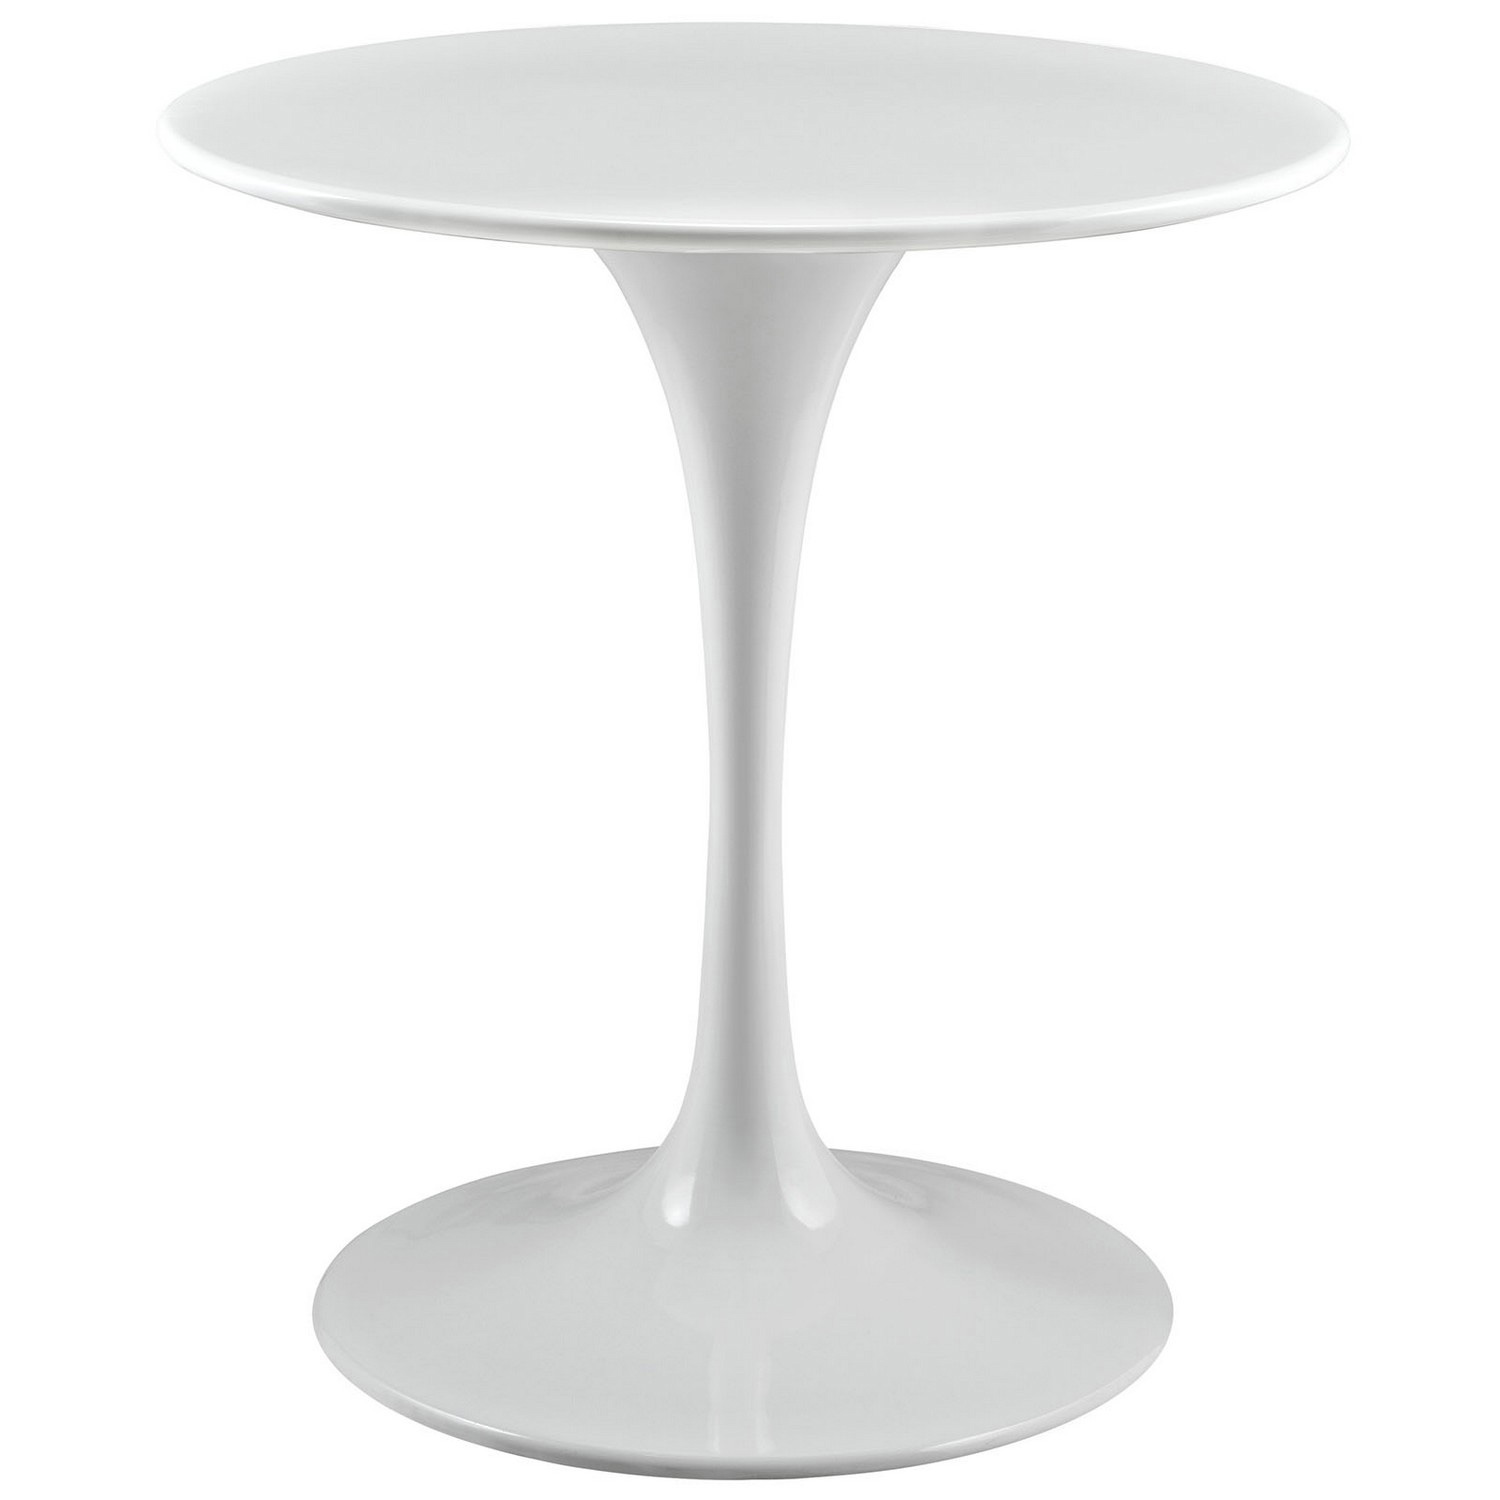 Modway Lippa 28 Wood Top Side Table - White